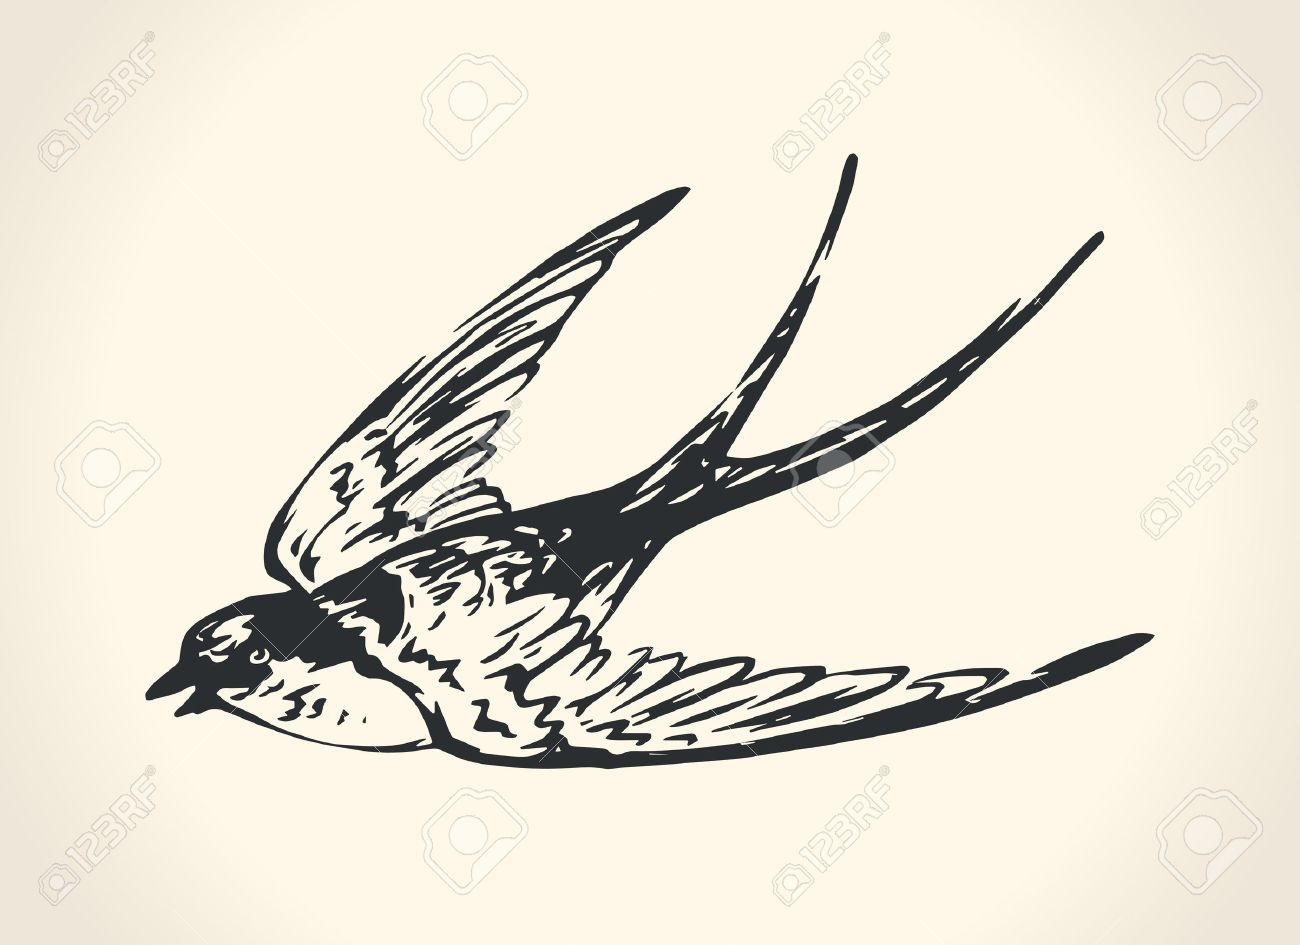 Set of sketches of flying swallows stock vector illustration - Swallow Vintage Illustration Of Swallow Illustration